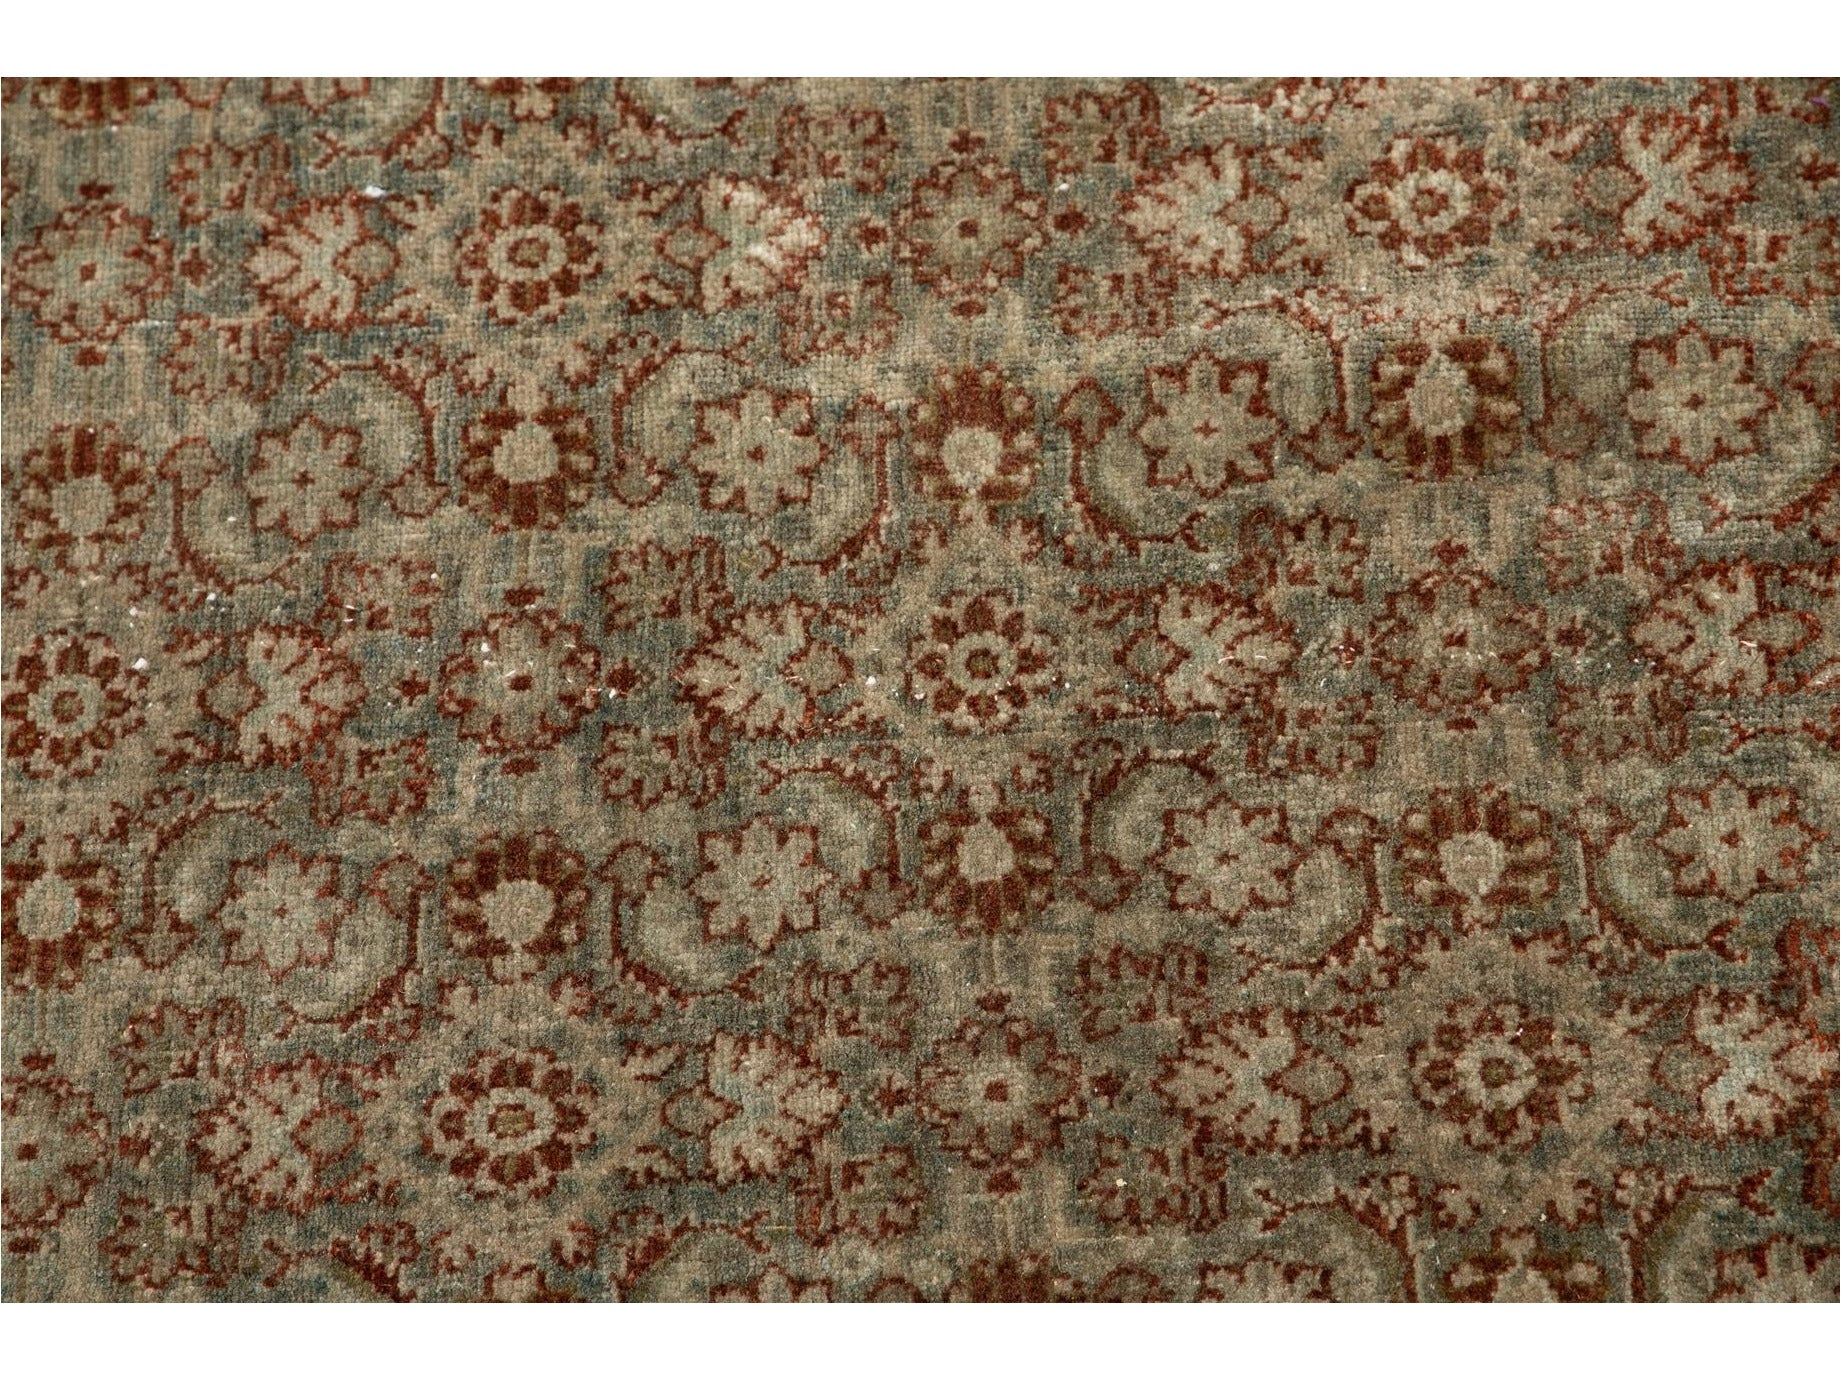 Early 20th Century Antique Tabriz Wool Rug 9 X 12